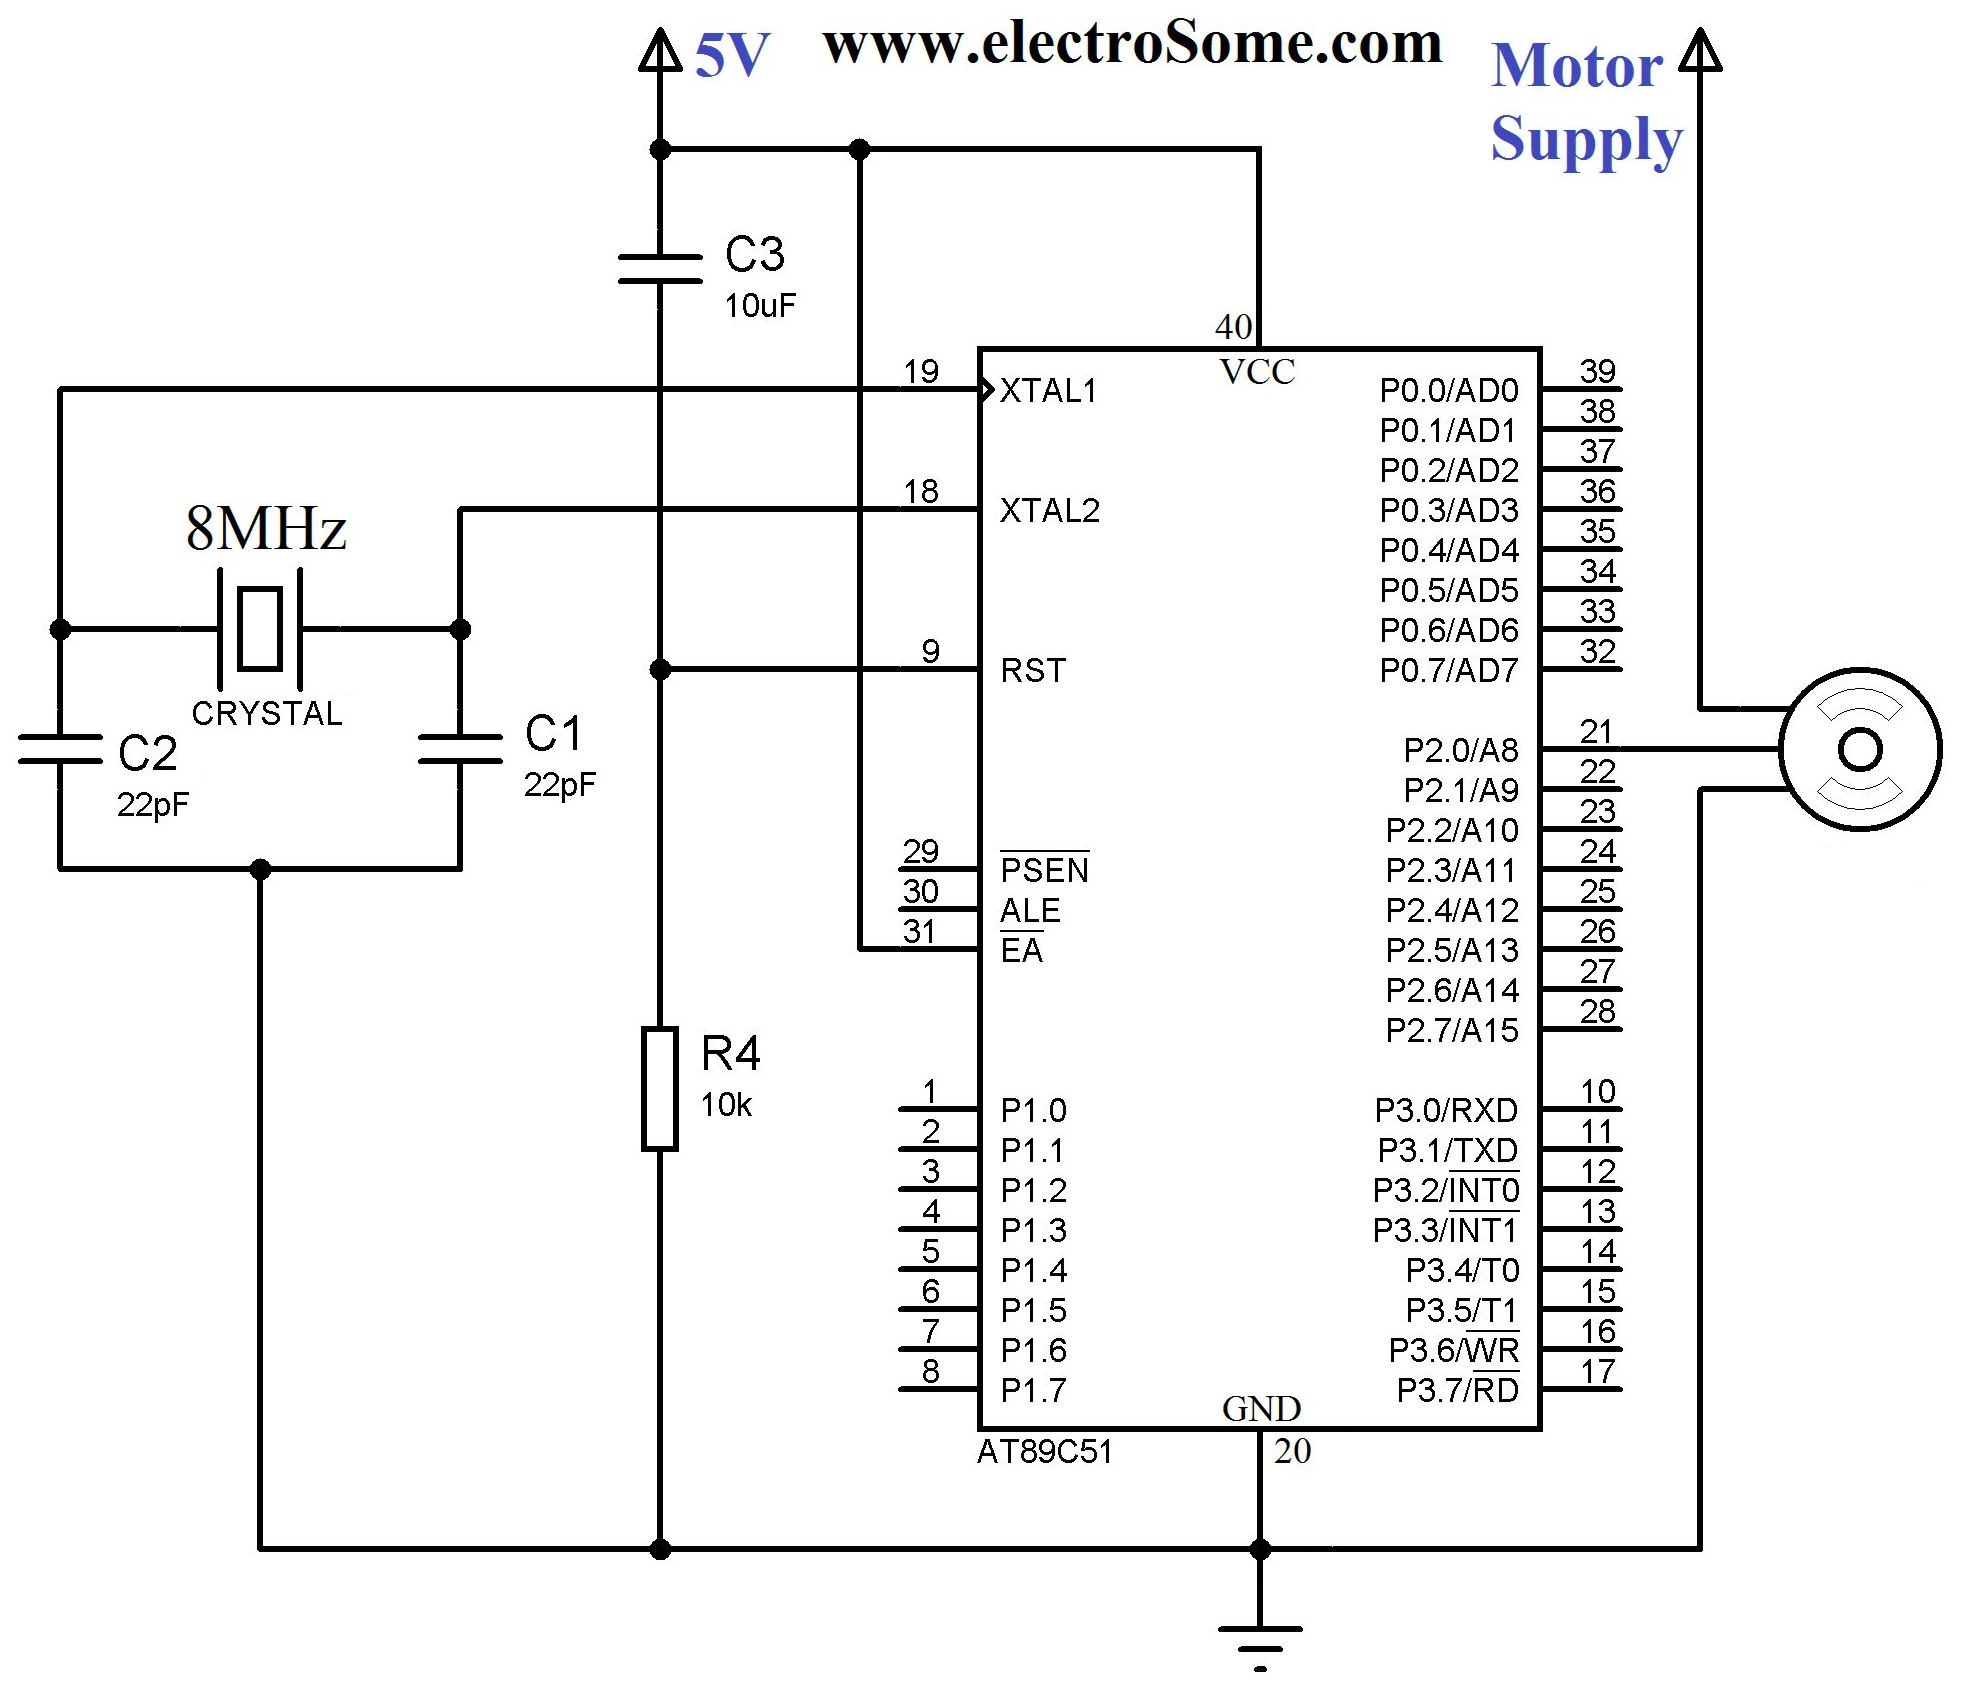 Servo Motor Circuit Page 3 Automation Circuits As Well Battery Monitor Diagram Furthermore Electric Interfacing With 8051 Using Keil C